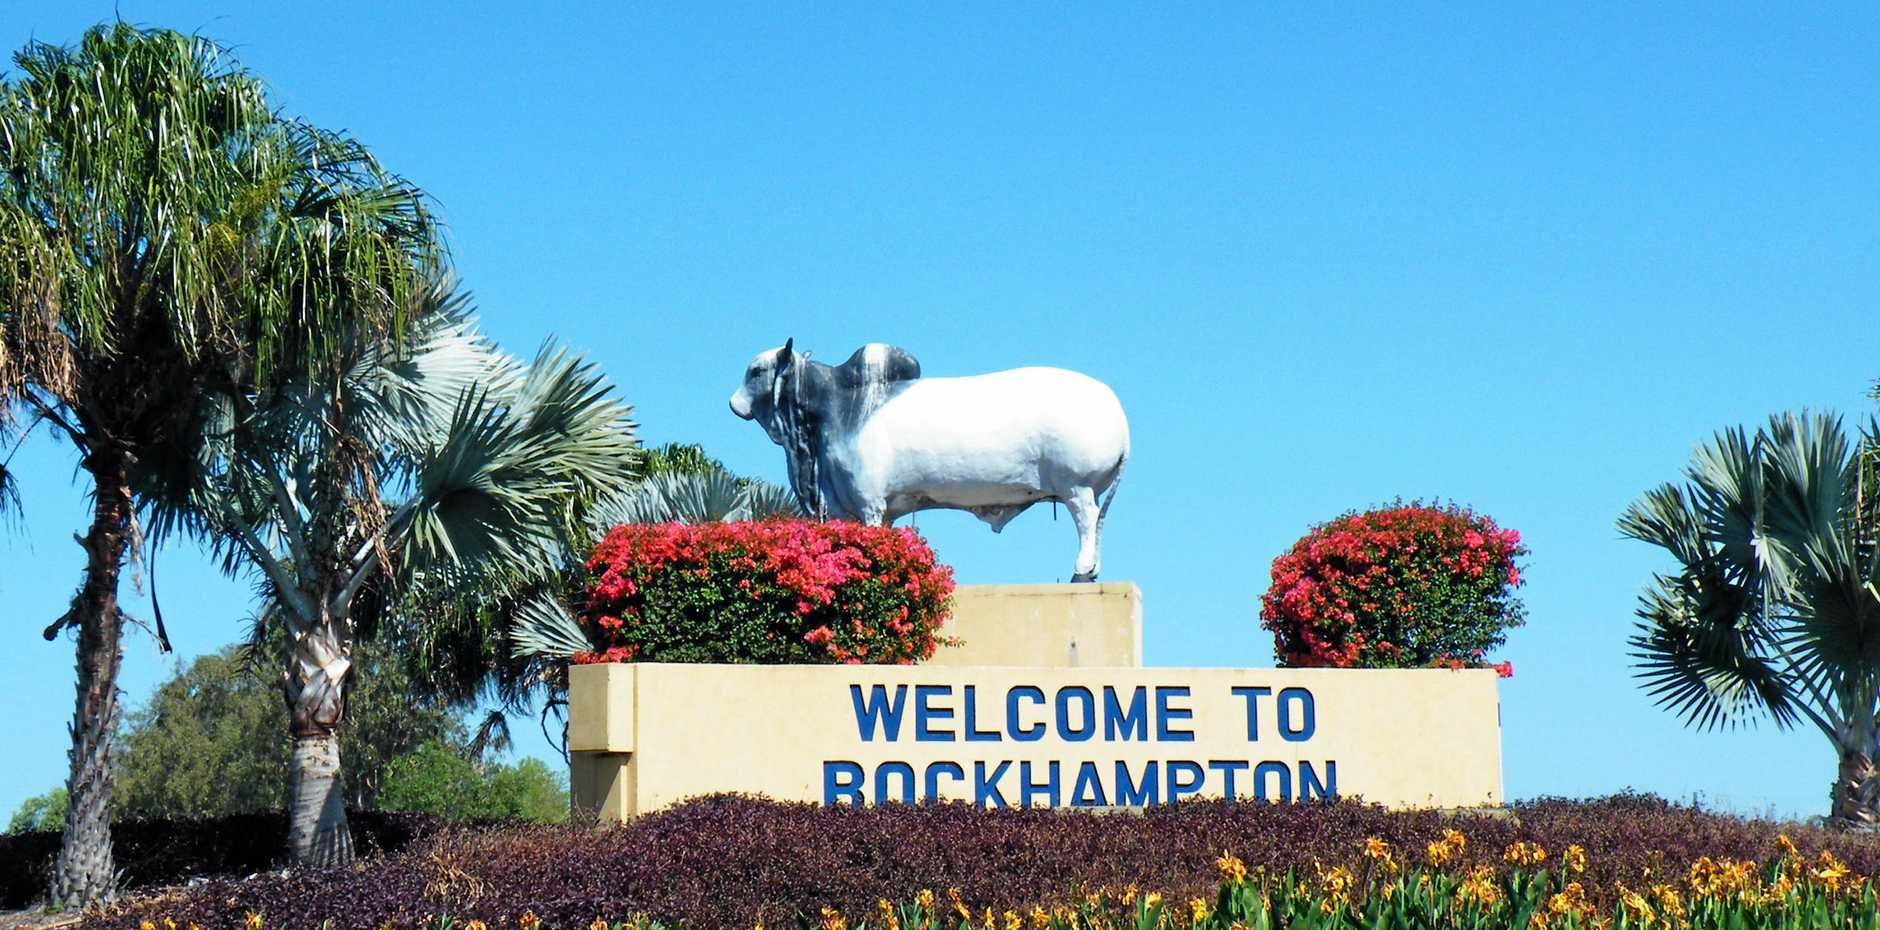 Bull at yeppen round-a-bout ( Welcome to rockhampton ) Photo Maddisan Hooper / Morning Bulletin